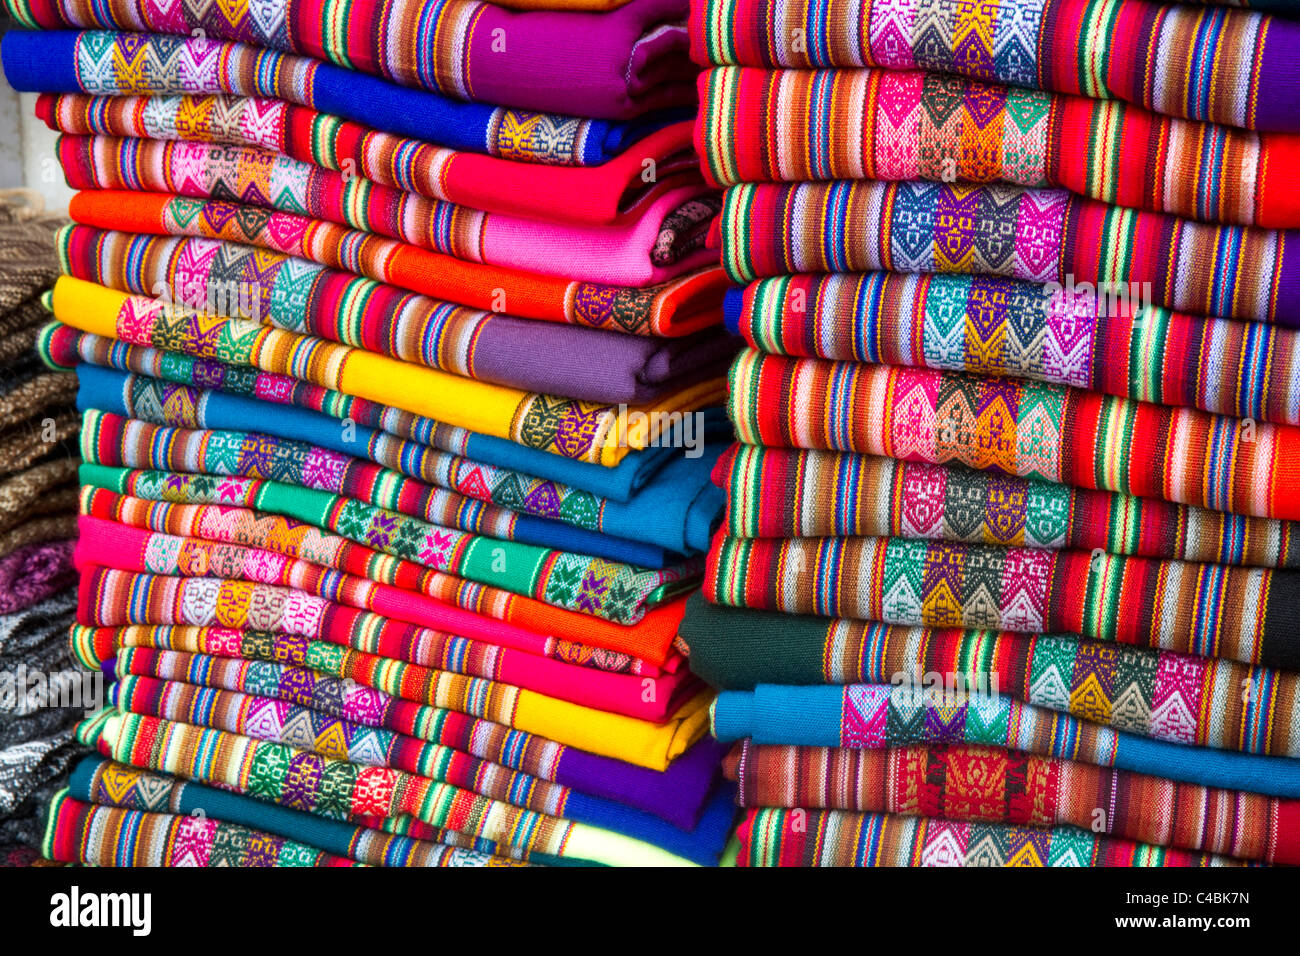 Textiles being sold at a market in Lima, Peru. - Stock Image